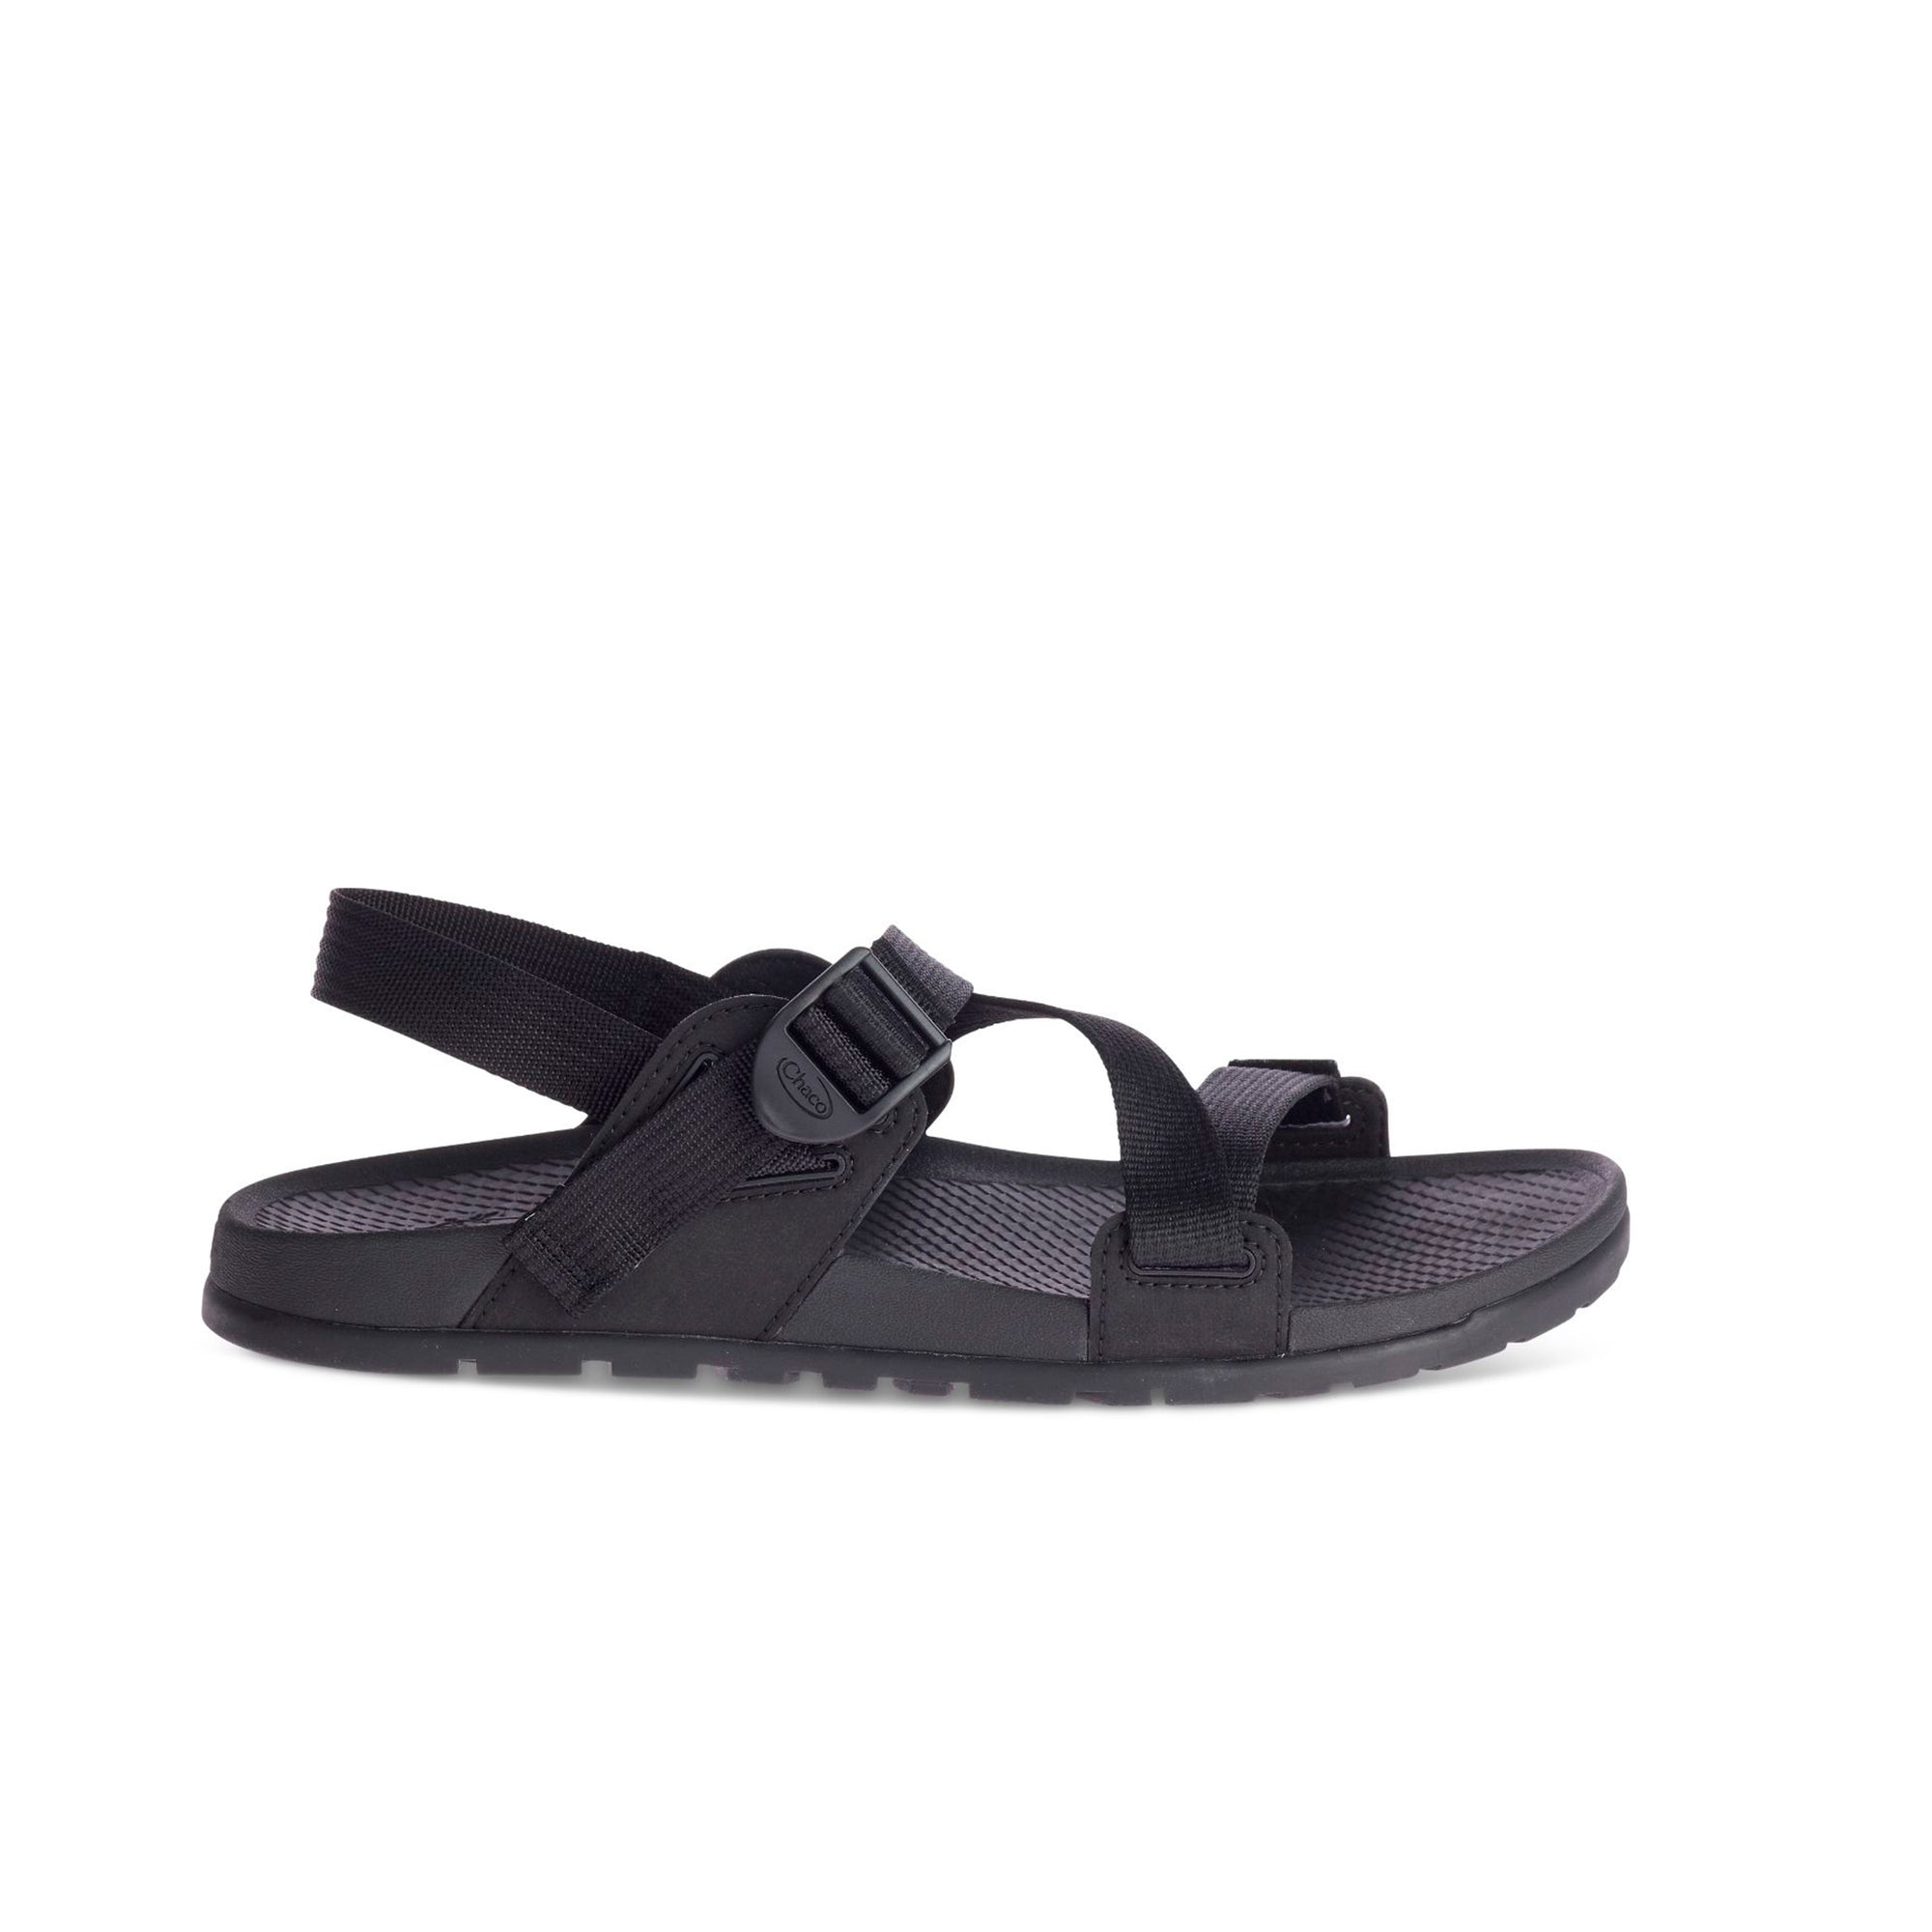 Chaco Womens Lowdown Sandal: Black - The Union Project